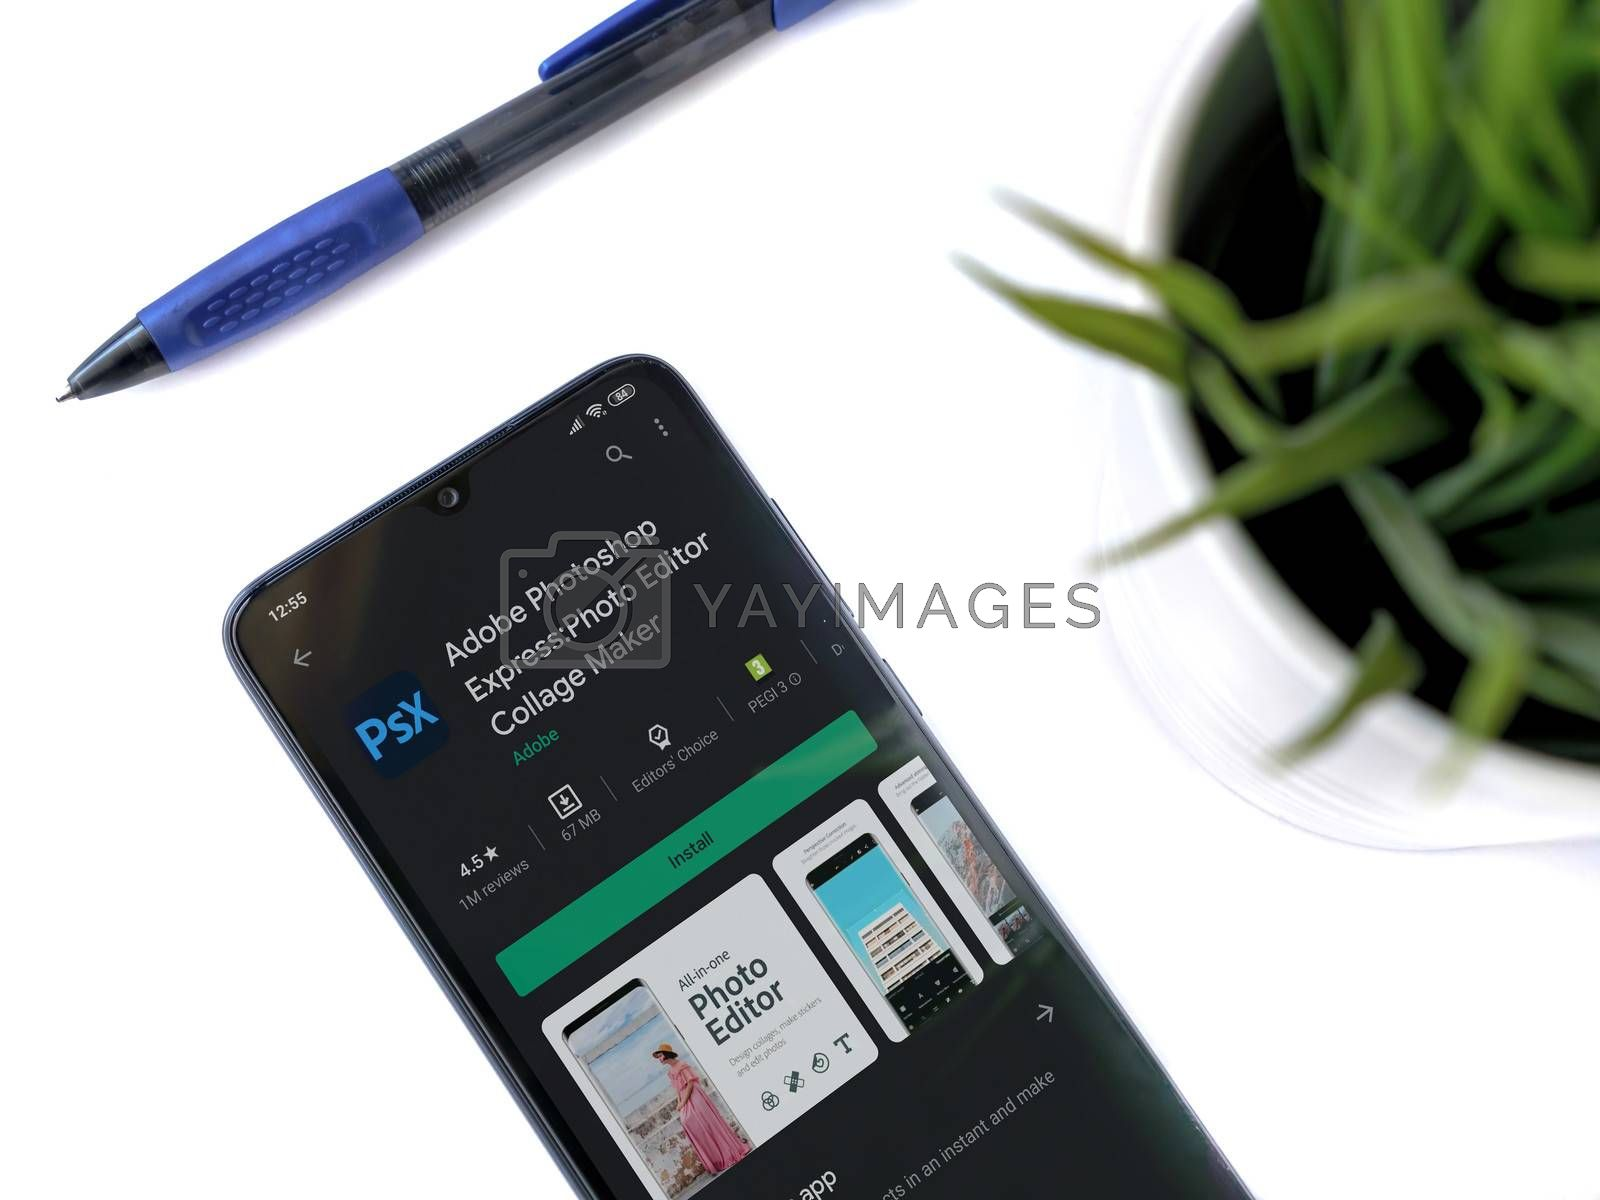 Lod, Israel - July 8, 2020: Modern minimalist office workspace with black mobile smartphone with Adobe Photoshop Express app play store page on a white background. Close up top view flat lay.